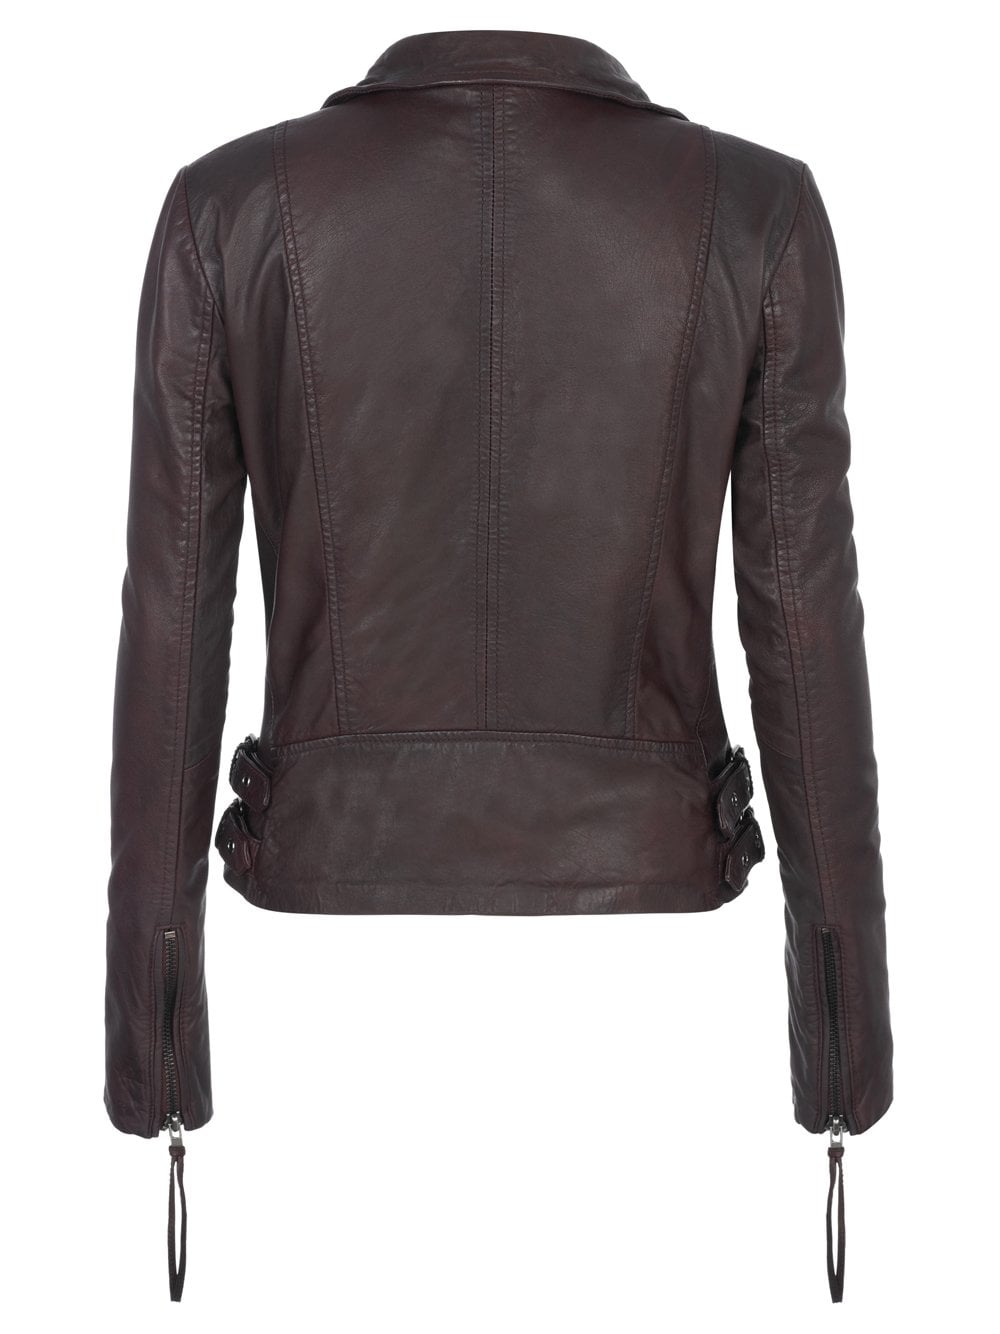 Men's Slim fit Genuine Lambskin Leather Motorcycle Jacket- NF2 A Slim Fit Leather Jacket works best for the city temperatures and gives a sporty look, all at once. Add spice to your sporty look with this Slim Fit Biker Jacket. it's time for you to pep up your Leather Jacket .